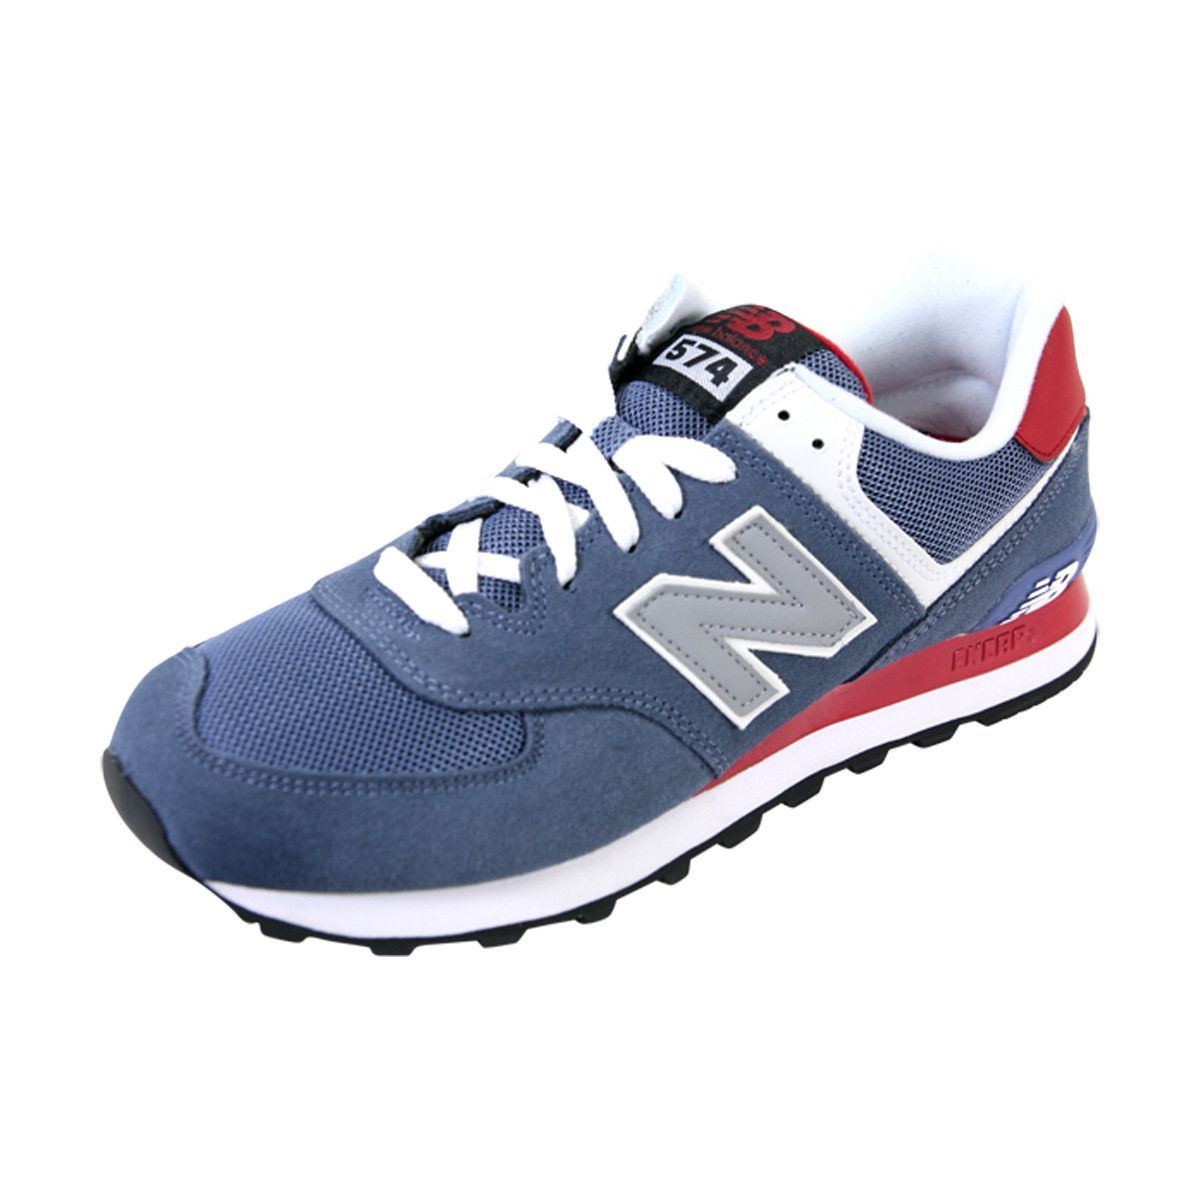 New Balance - Men's 574 Core Plus Classic Running Shoes - Crater Blue/Red